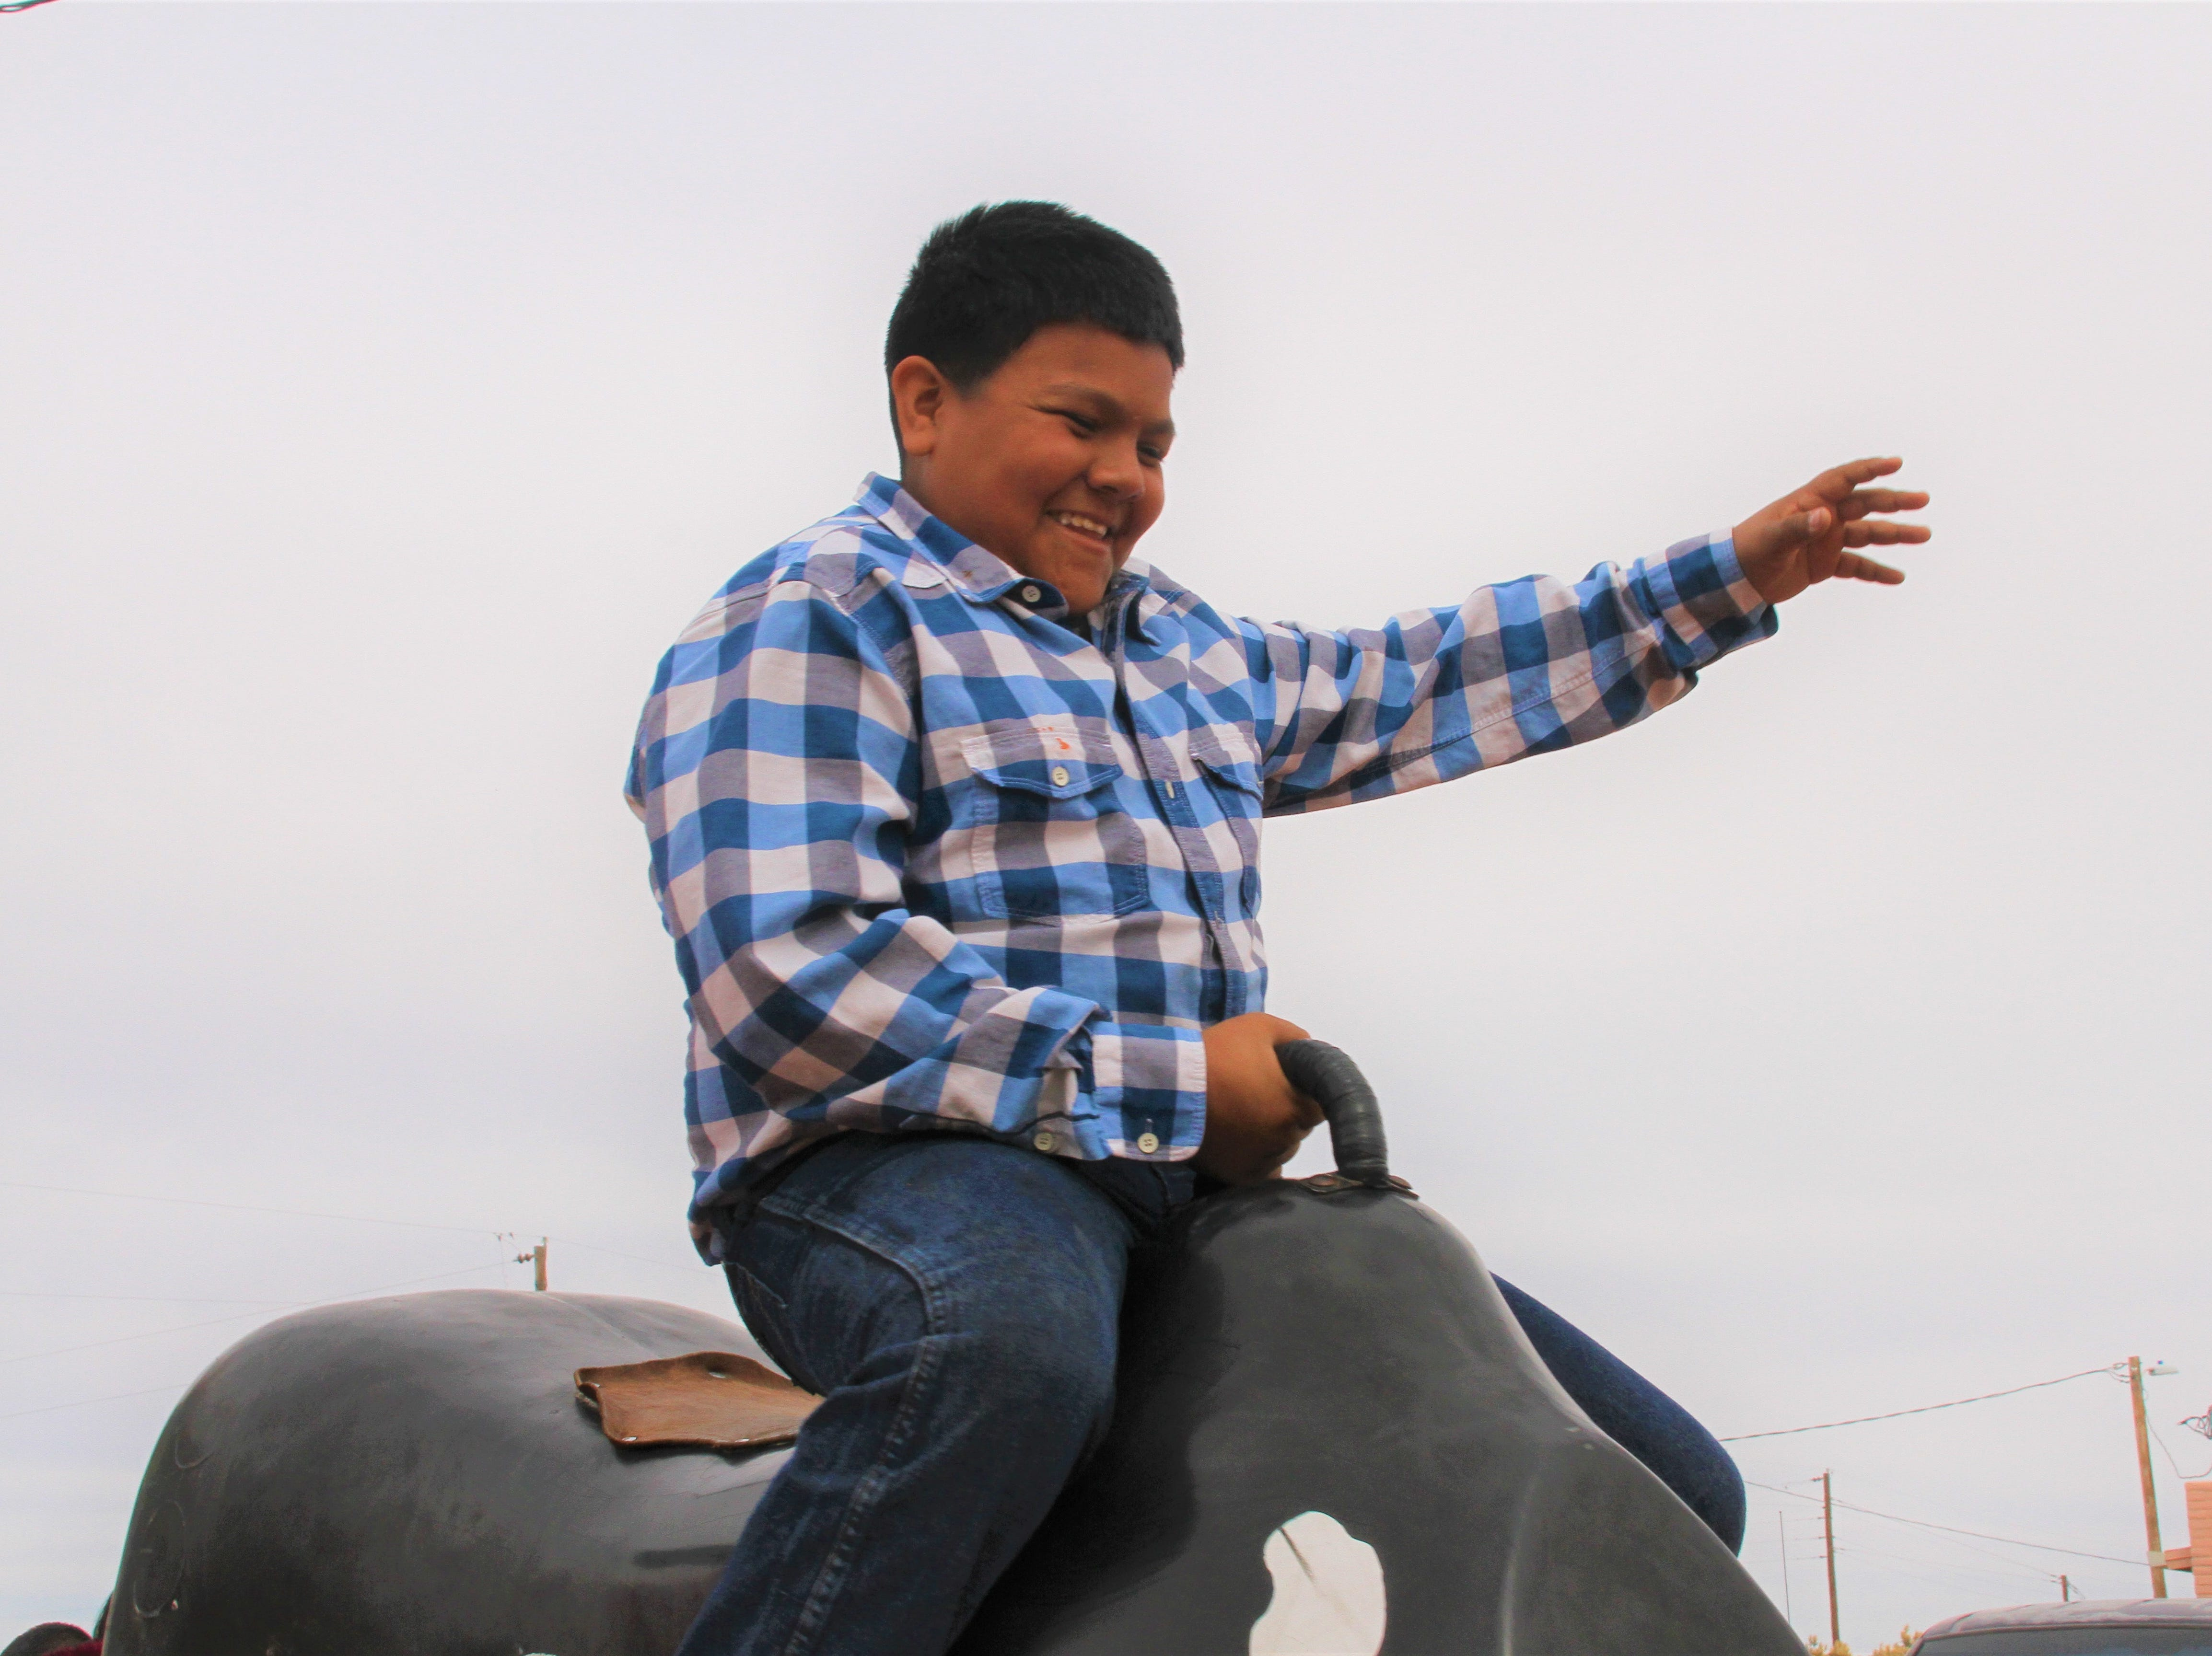 Ramon Quezada, 13, of Phoenix, Arizona riding a mechanical bull.